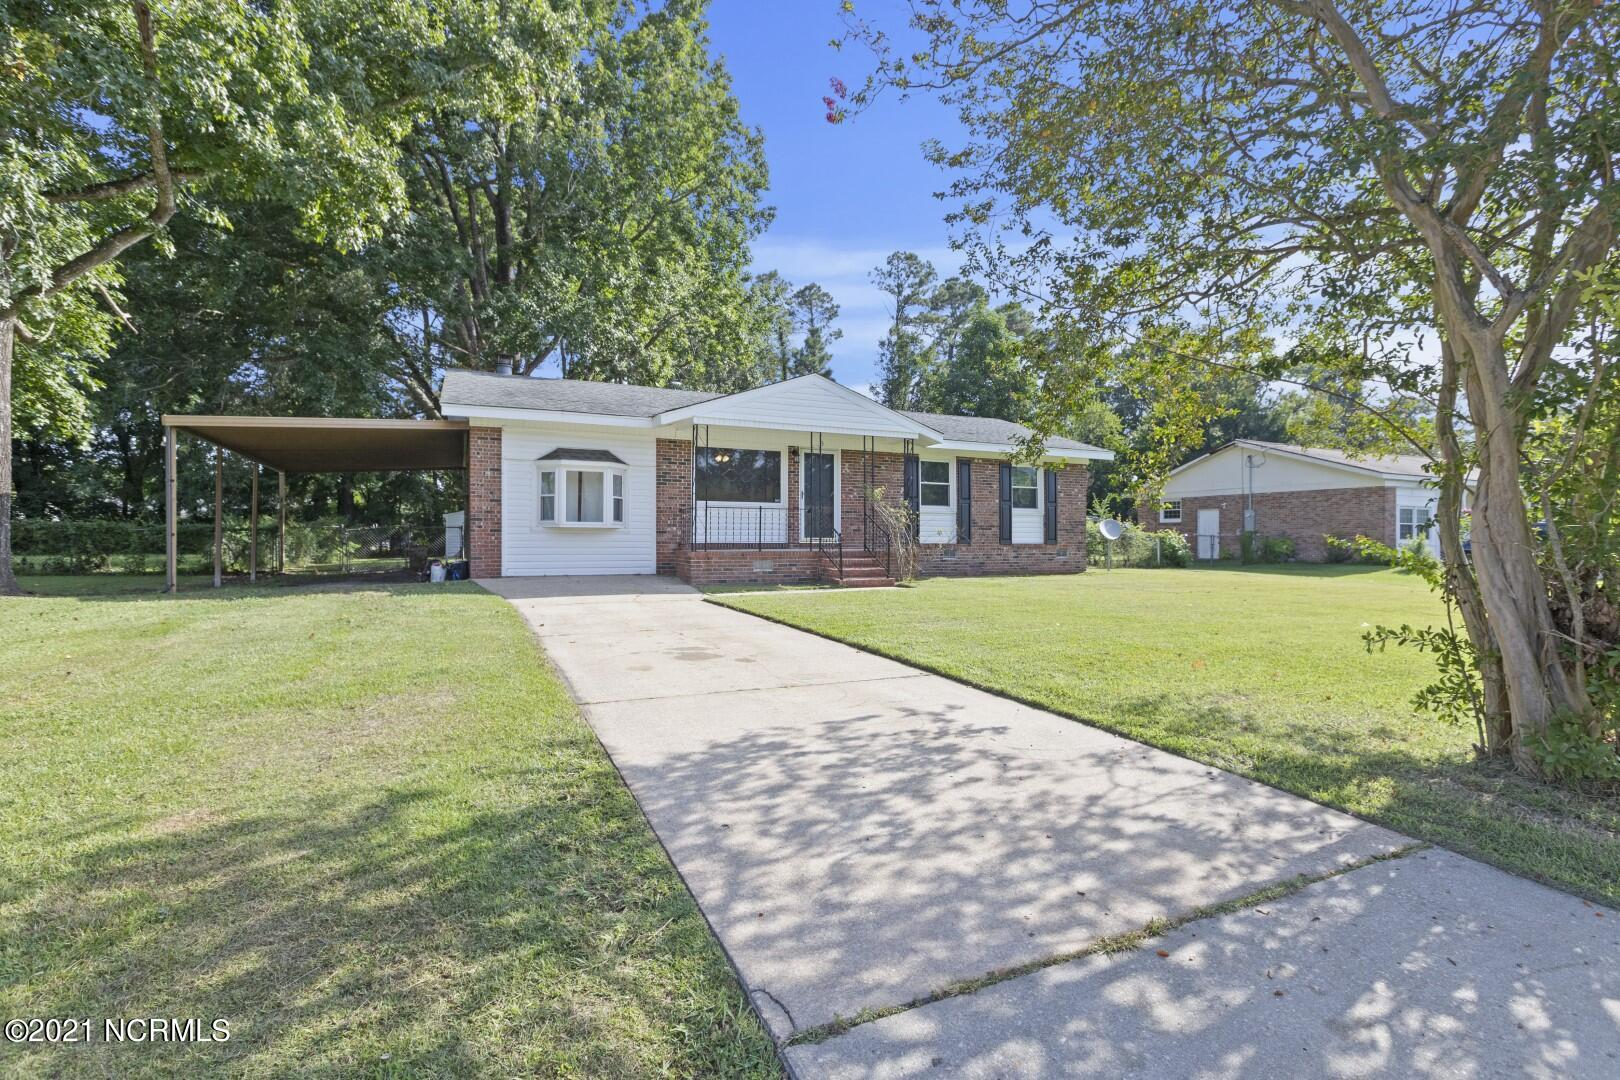 This Cozy 3-bedroom, 2-bathroom brick home is located in the Montclair subdivision off of Piney Green Rd, just minutes away from nearby schools, area bases and shops. When you open the front-door, you will walk into the living room and immediately fall in love with the generous amount of natural light showcasing the new LVP flooring that runs throughout most of the home. Key features in this home not only include a newly renovated galley style kitchen with white cabinets, tiled backsplash and gorgeous stainless-steel appliances but also a spacious stepdown bonus room with a charming bay window anda wood burning fireplace for those times when you just want to relax. The exterior of property comes with a covered overhang on the side of the house,a wood deck overlooking the back yard andeven a spacious shed. All perfect additions for entertaining family and friends outdoors!